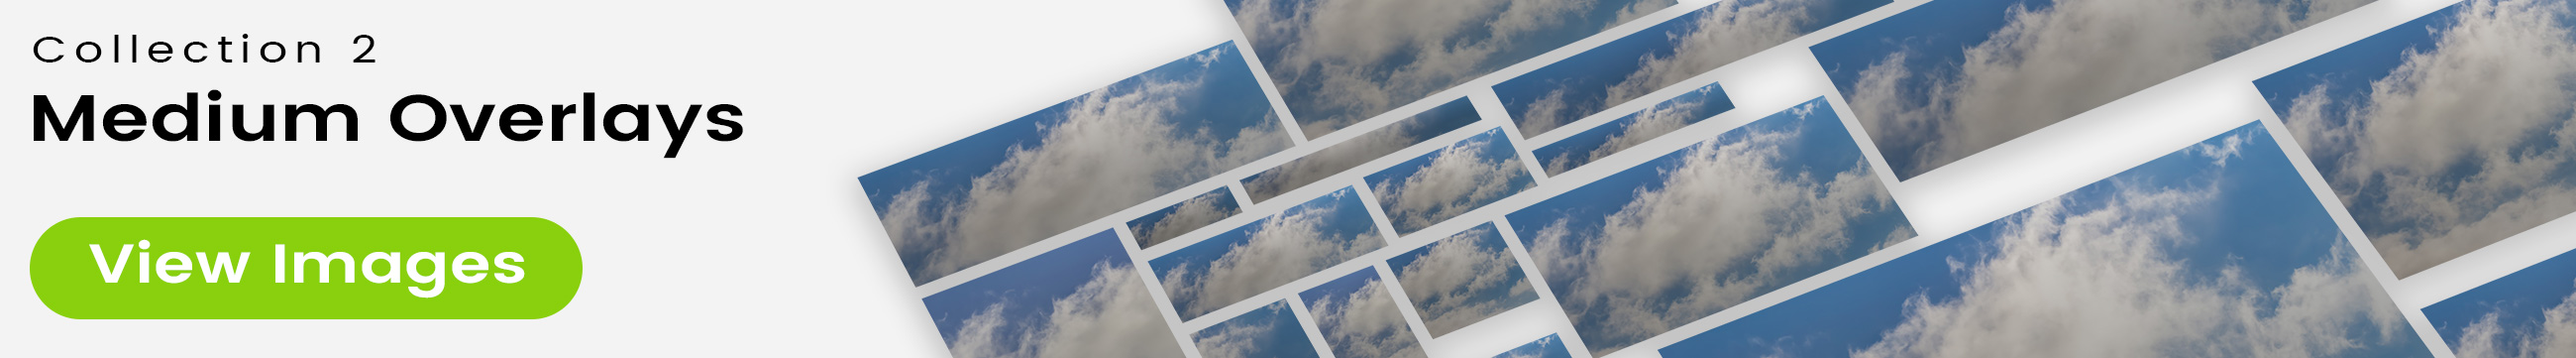 See 25 bonus images included with clouds stock image 9465. Collection 2 of 4 features a medium-dark overlay design.